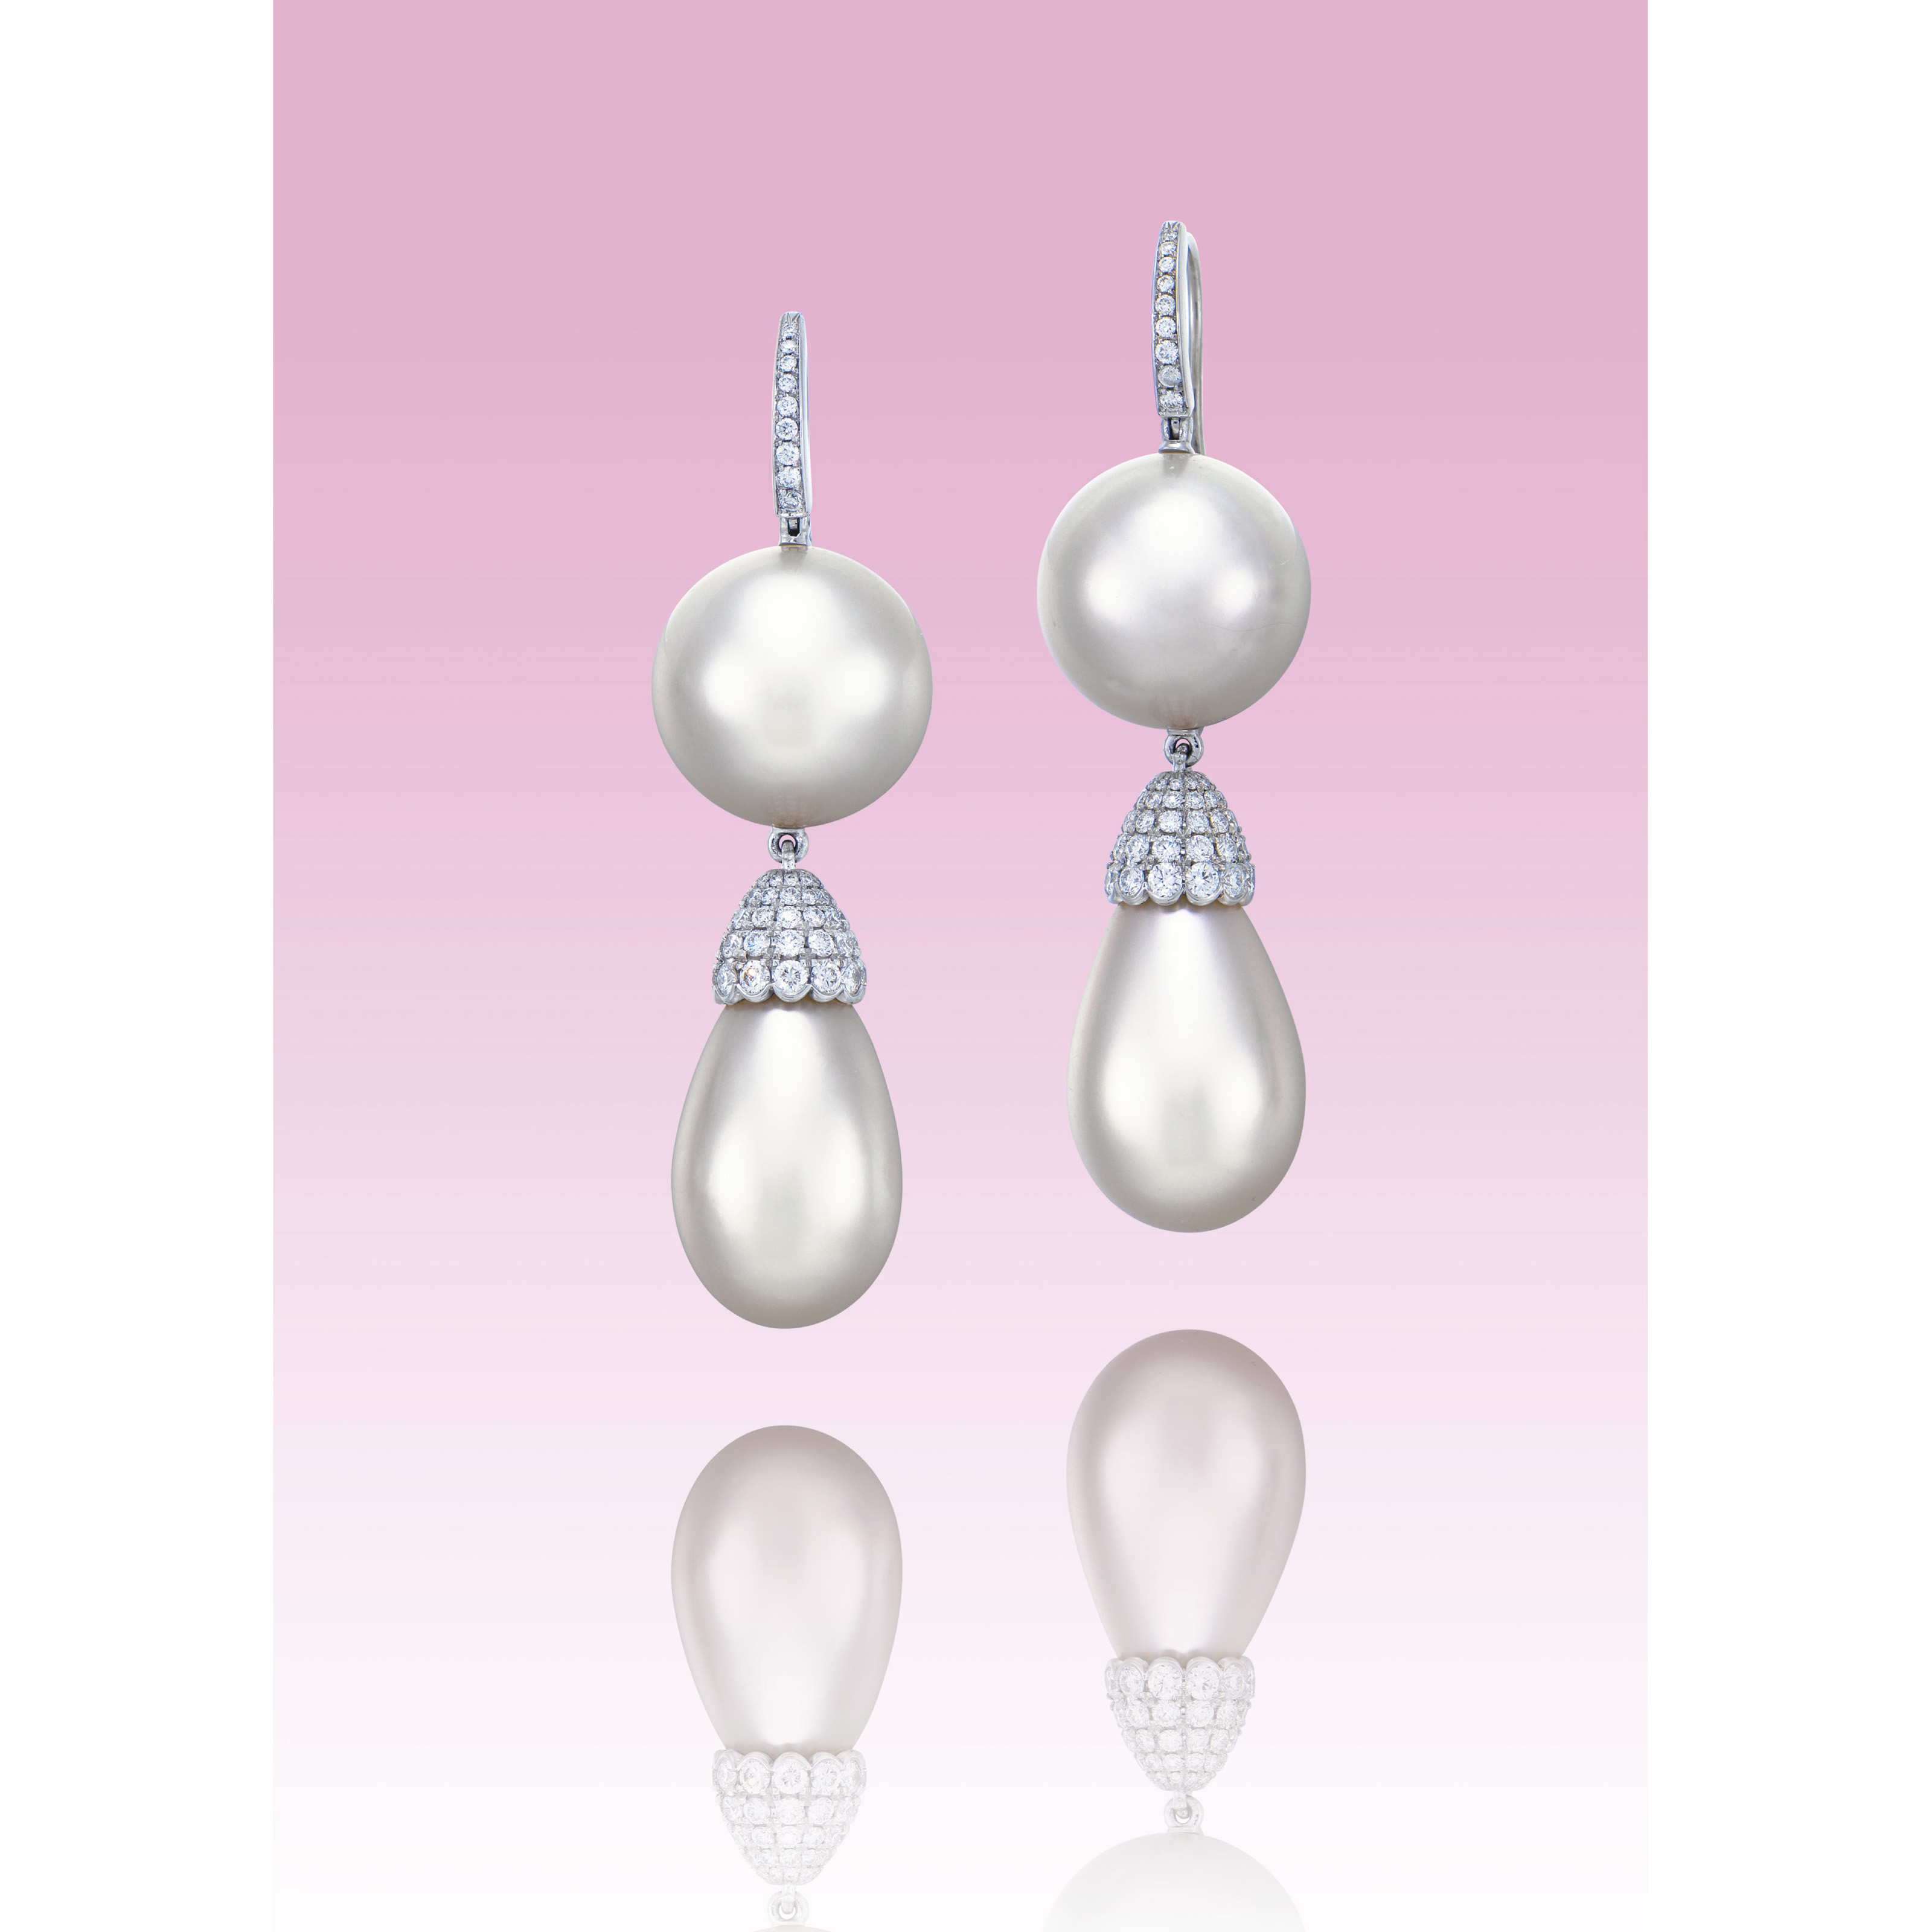 A UNIQUE PAIR OF NATURAL PEARL